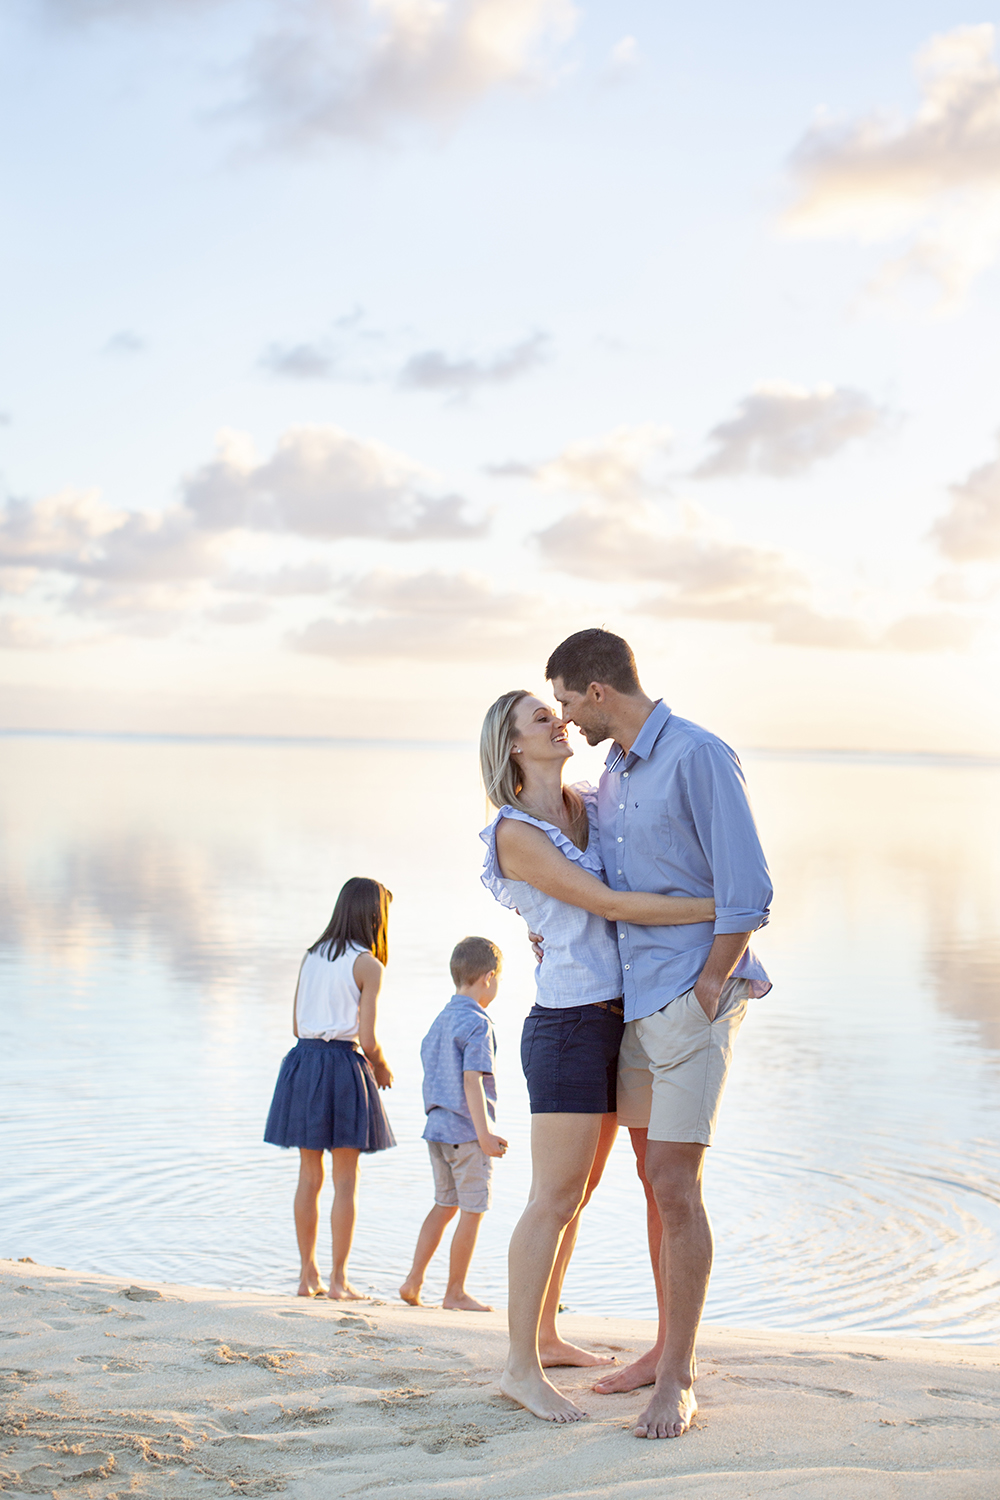 Destination Fine Art Family Photosession Photoshoot in Mauritius